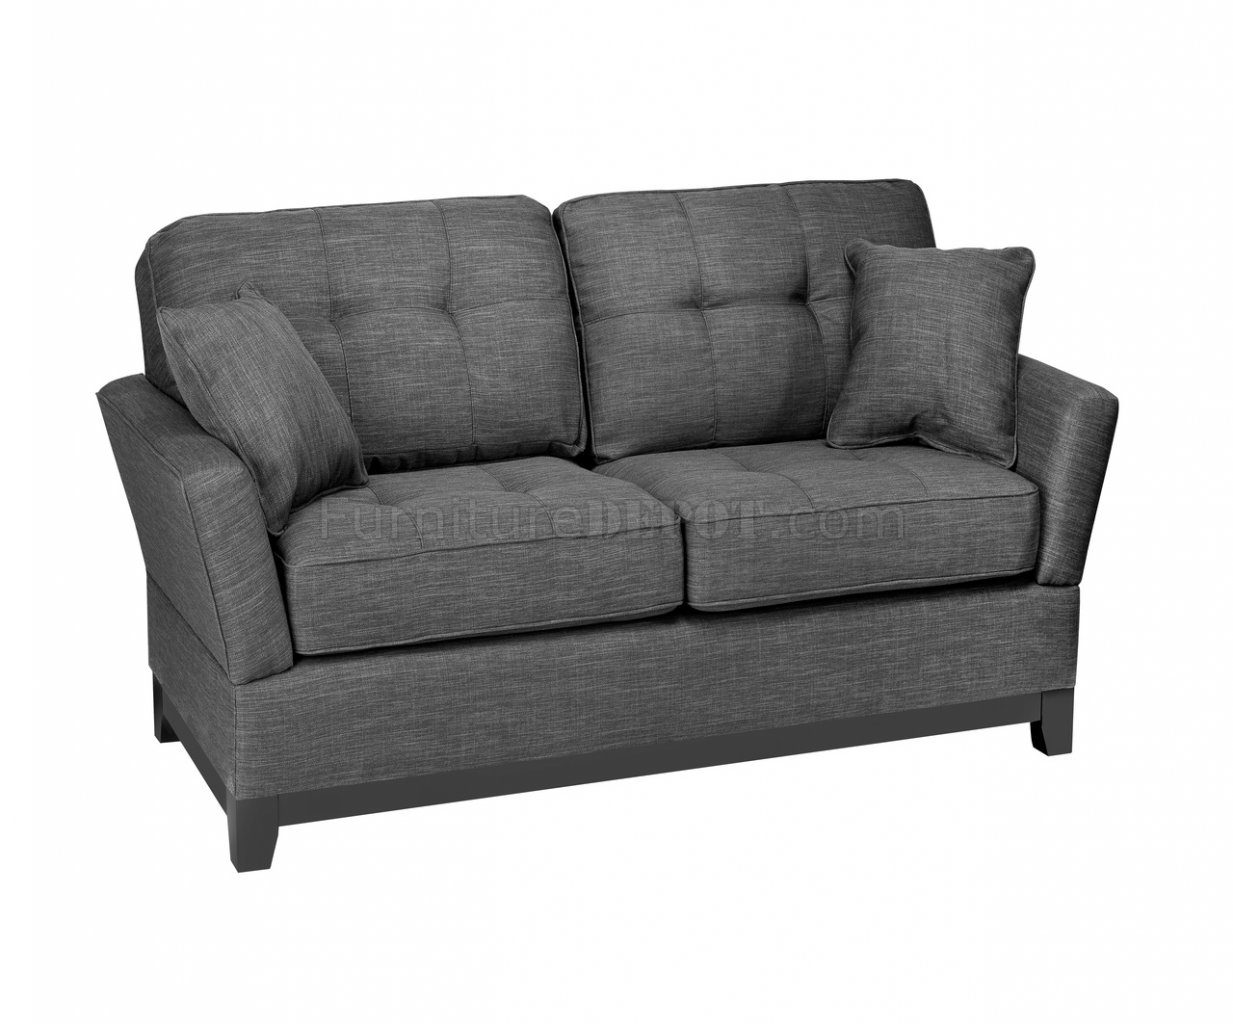 gray fabric sofa set baldwin opus and loveseat in by mstar w options